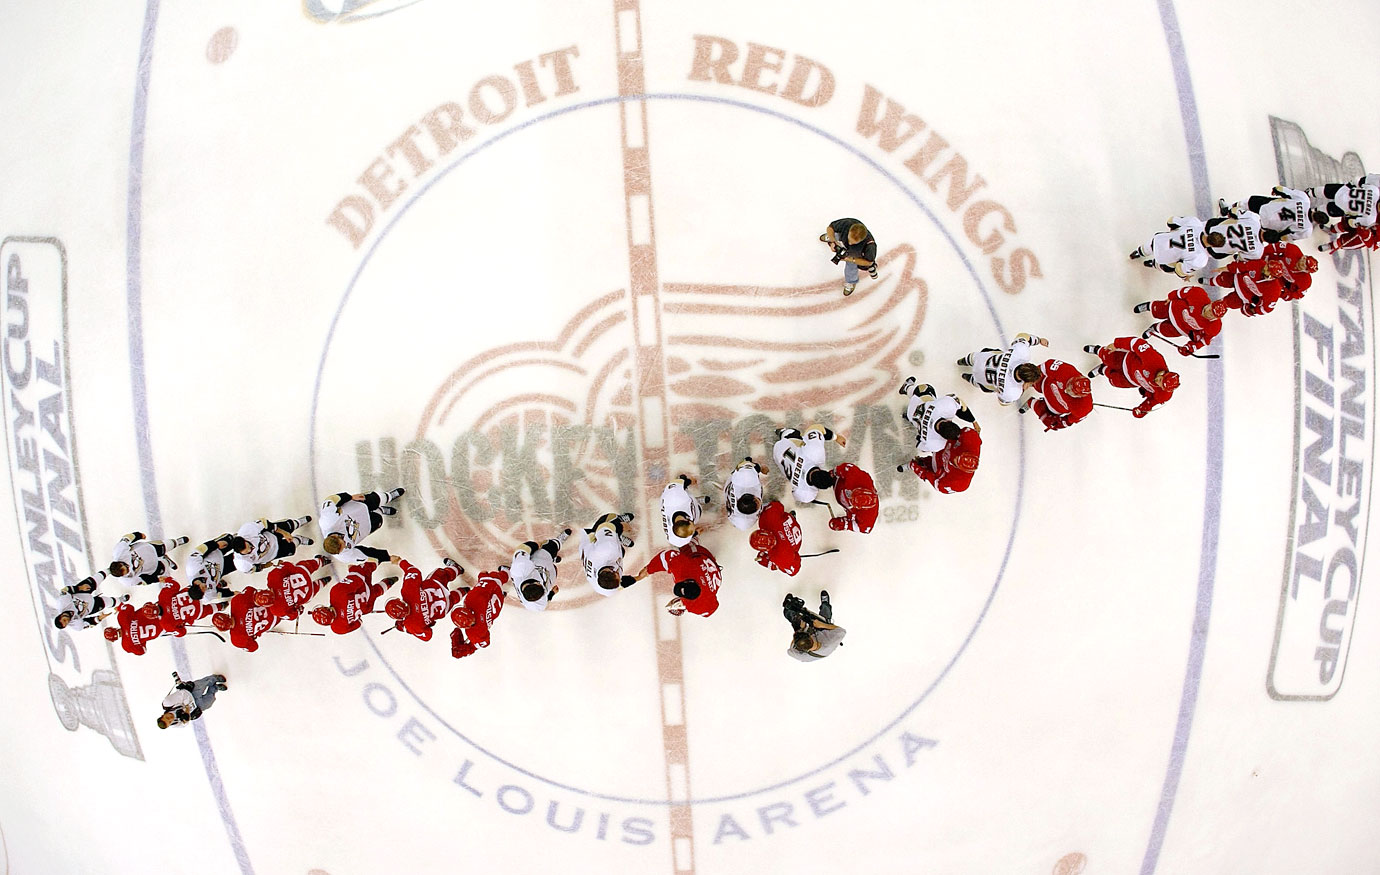 The NHL playoff handshake line, one the sport's most enduring and respectful traditions, ends every series. For the second year in a row, the Penguins and Red Wings were shaking hands after the last game of the season. The two teams met in the finals in both 2008 and here, 2009 -- with different outcomes each year. In this case, the Pens left with the Cup.